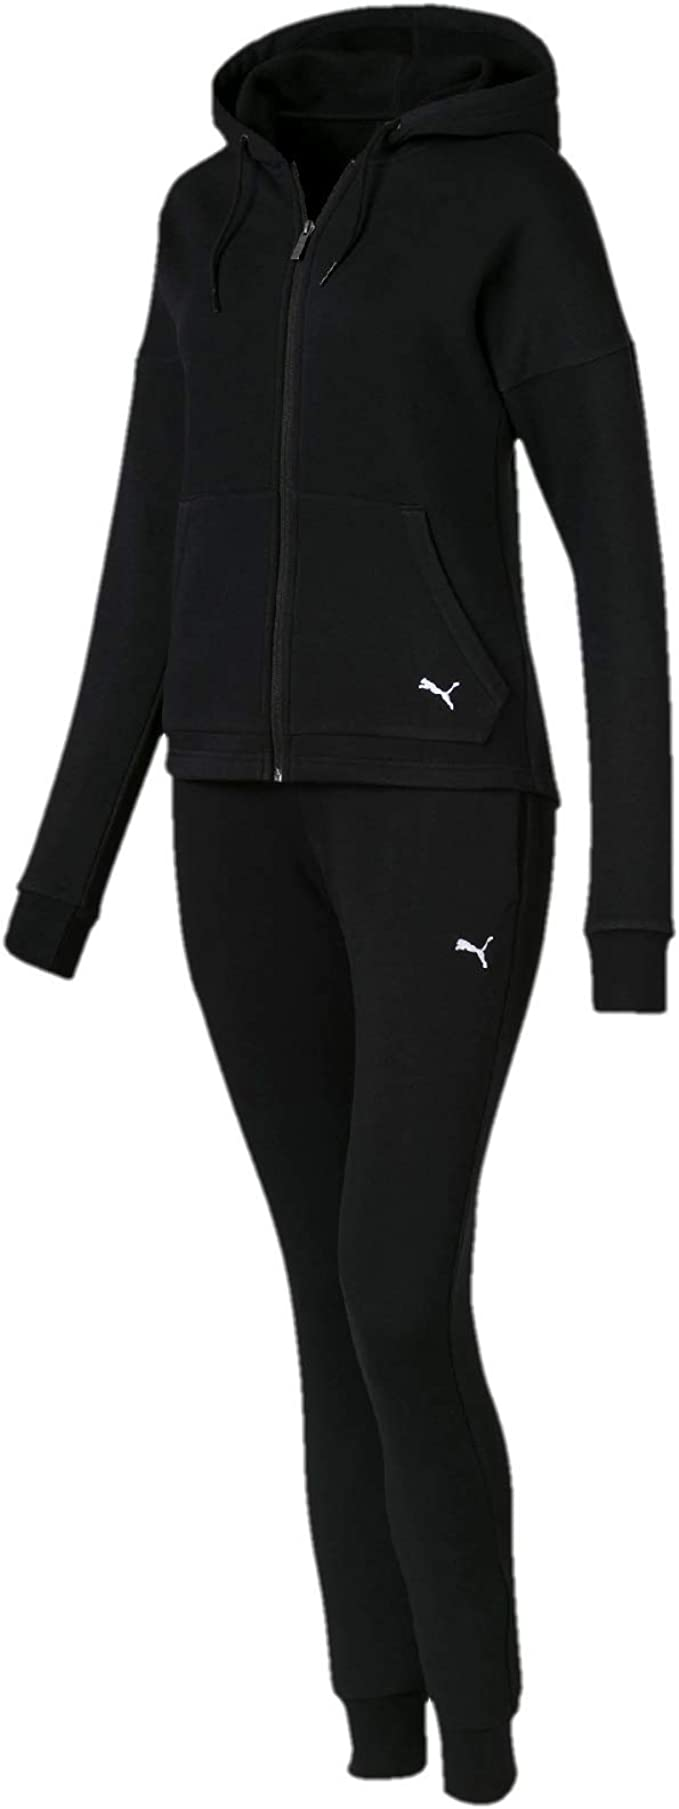 Puma Clean Sweat Suit CL Chándal, Mujer, Negro (Cotton Black), XS ...